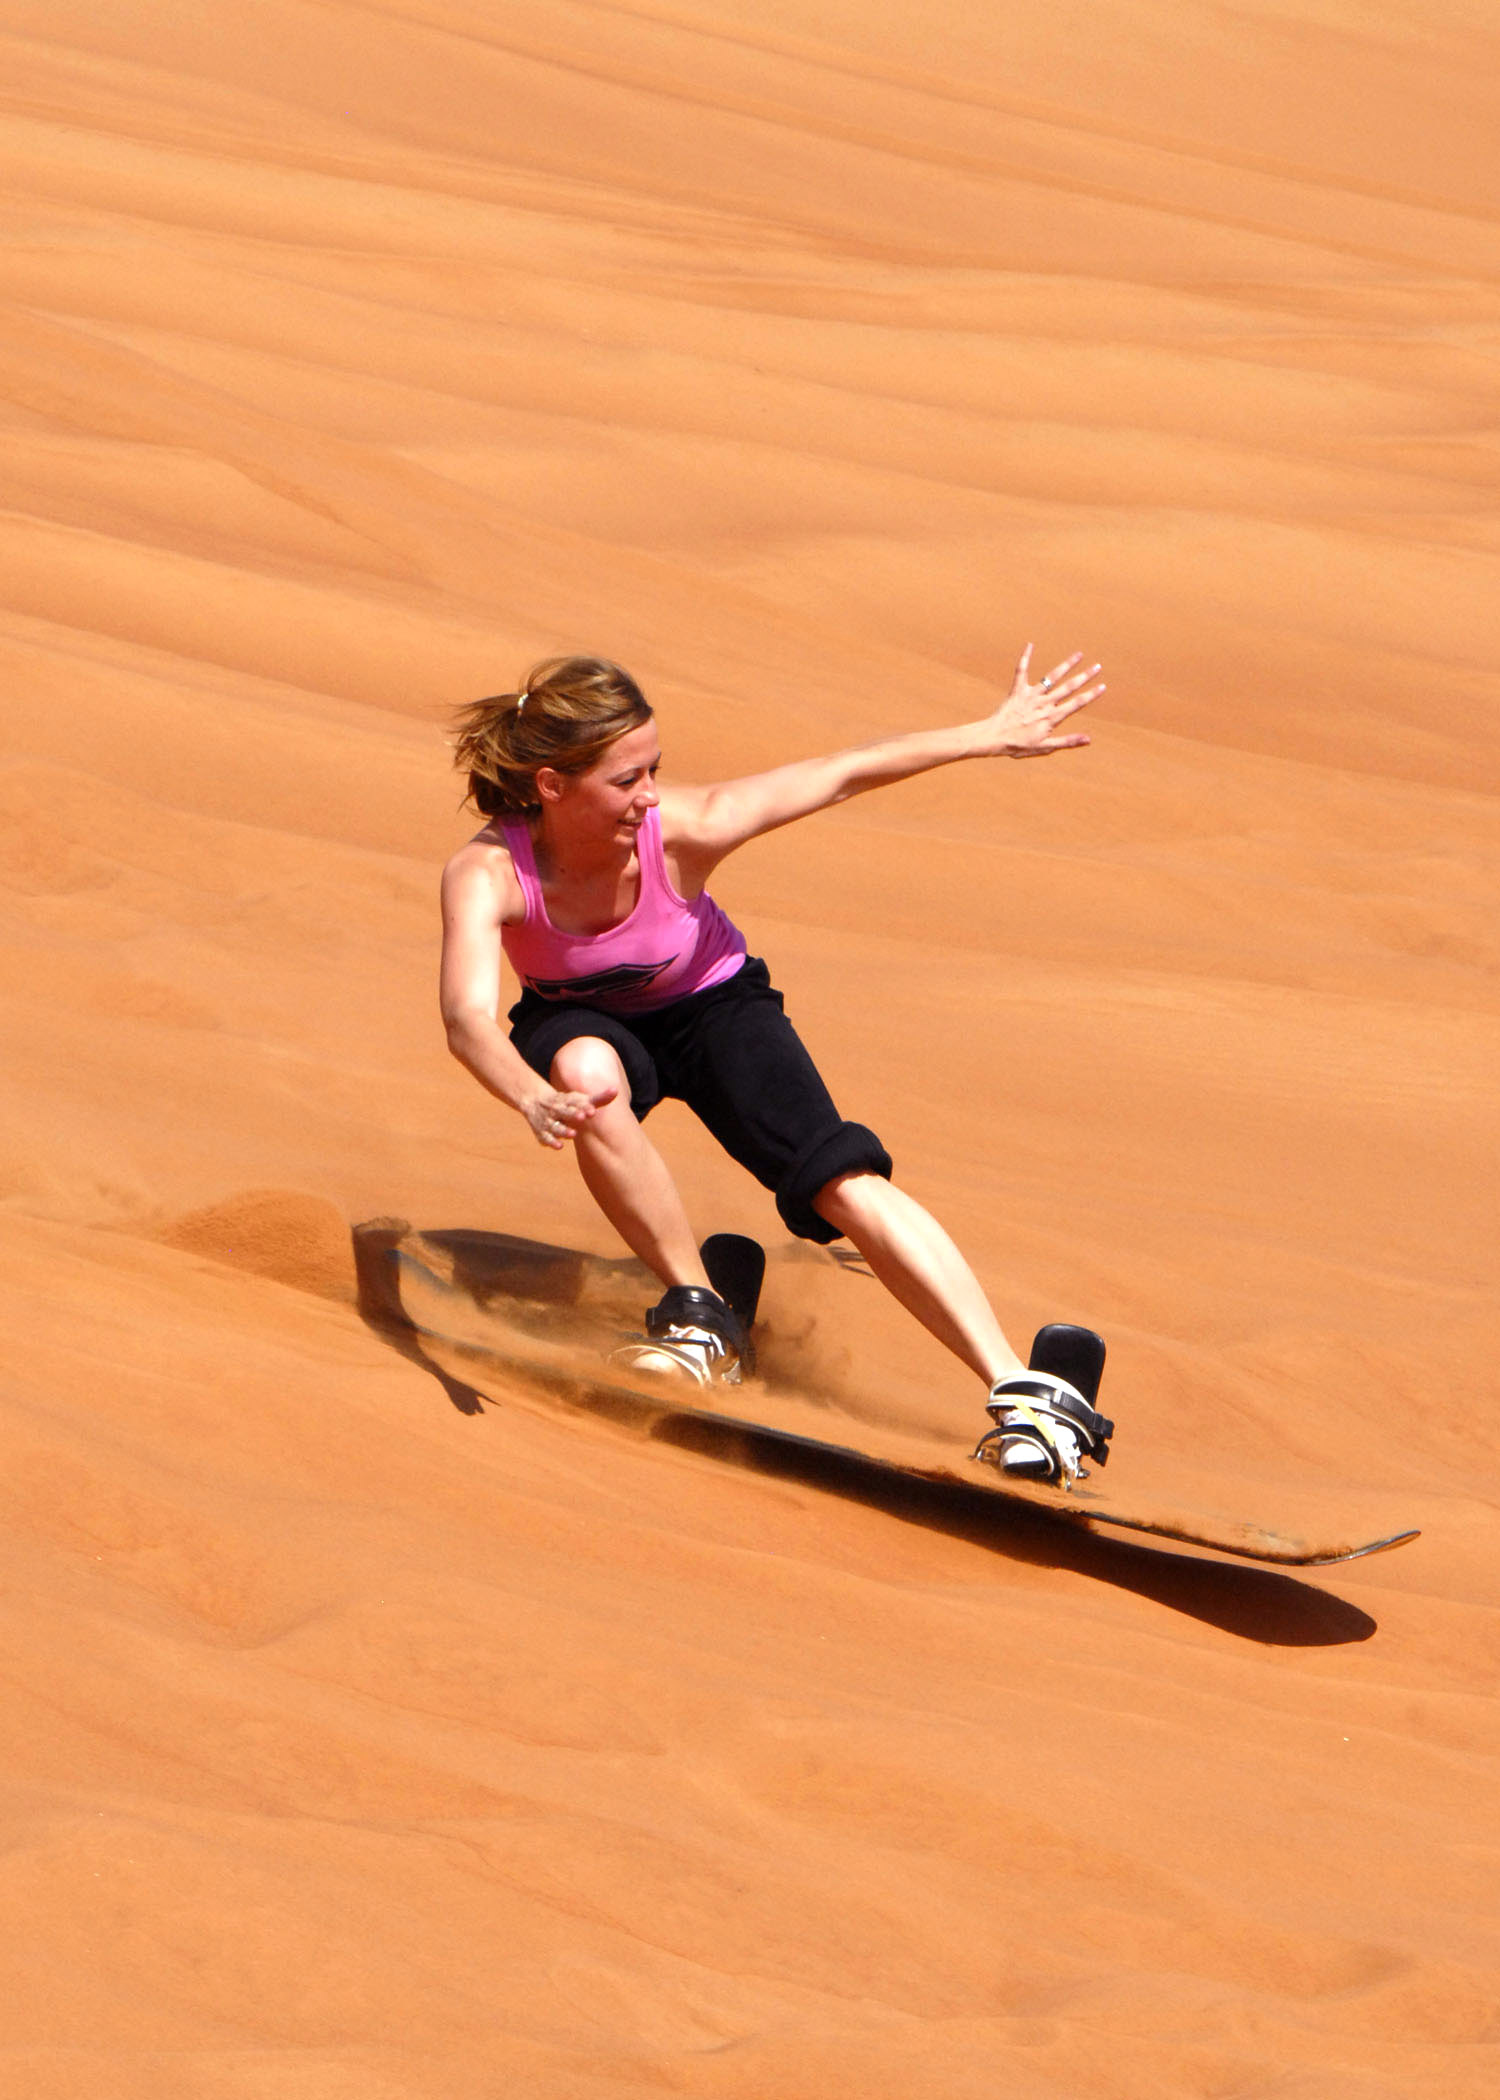 Slide down some of the steepest dunes in Wadi Rum on a sand board. You can try sand boarding during our  Wadi Rum Jeep Tour .